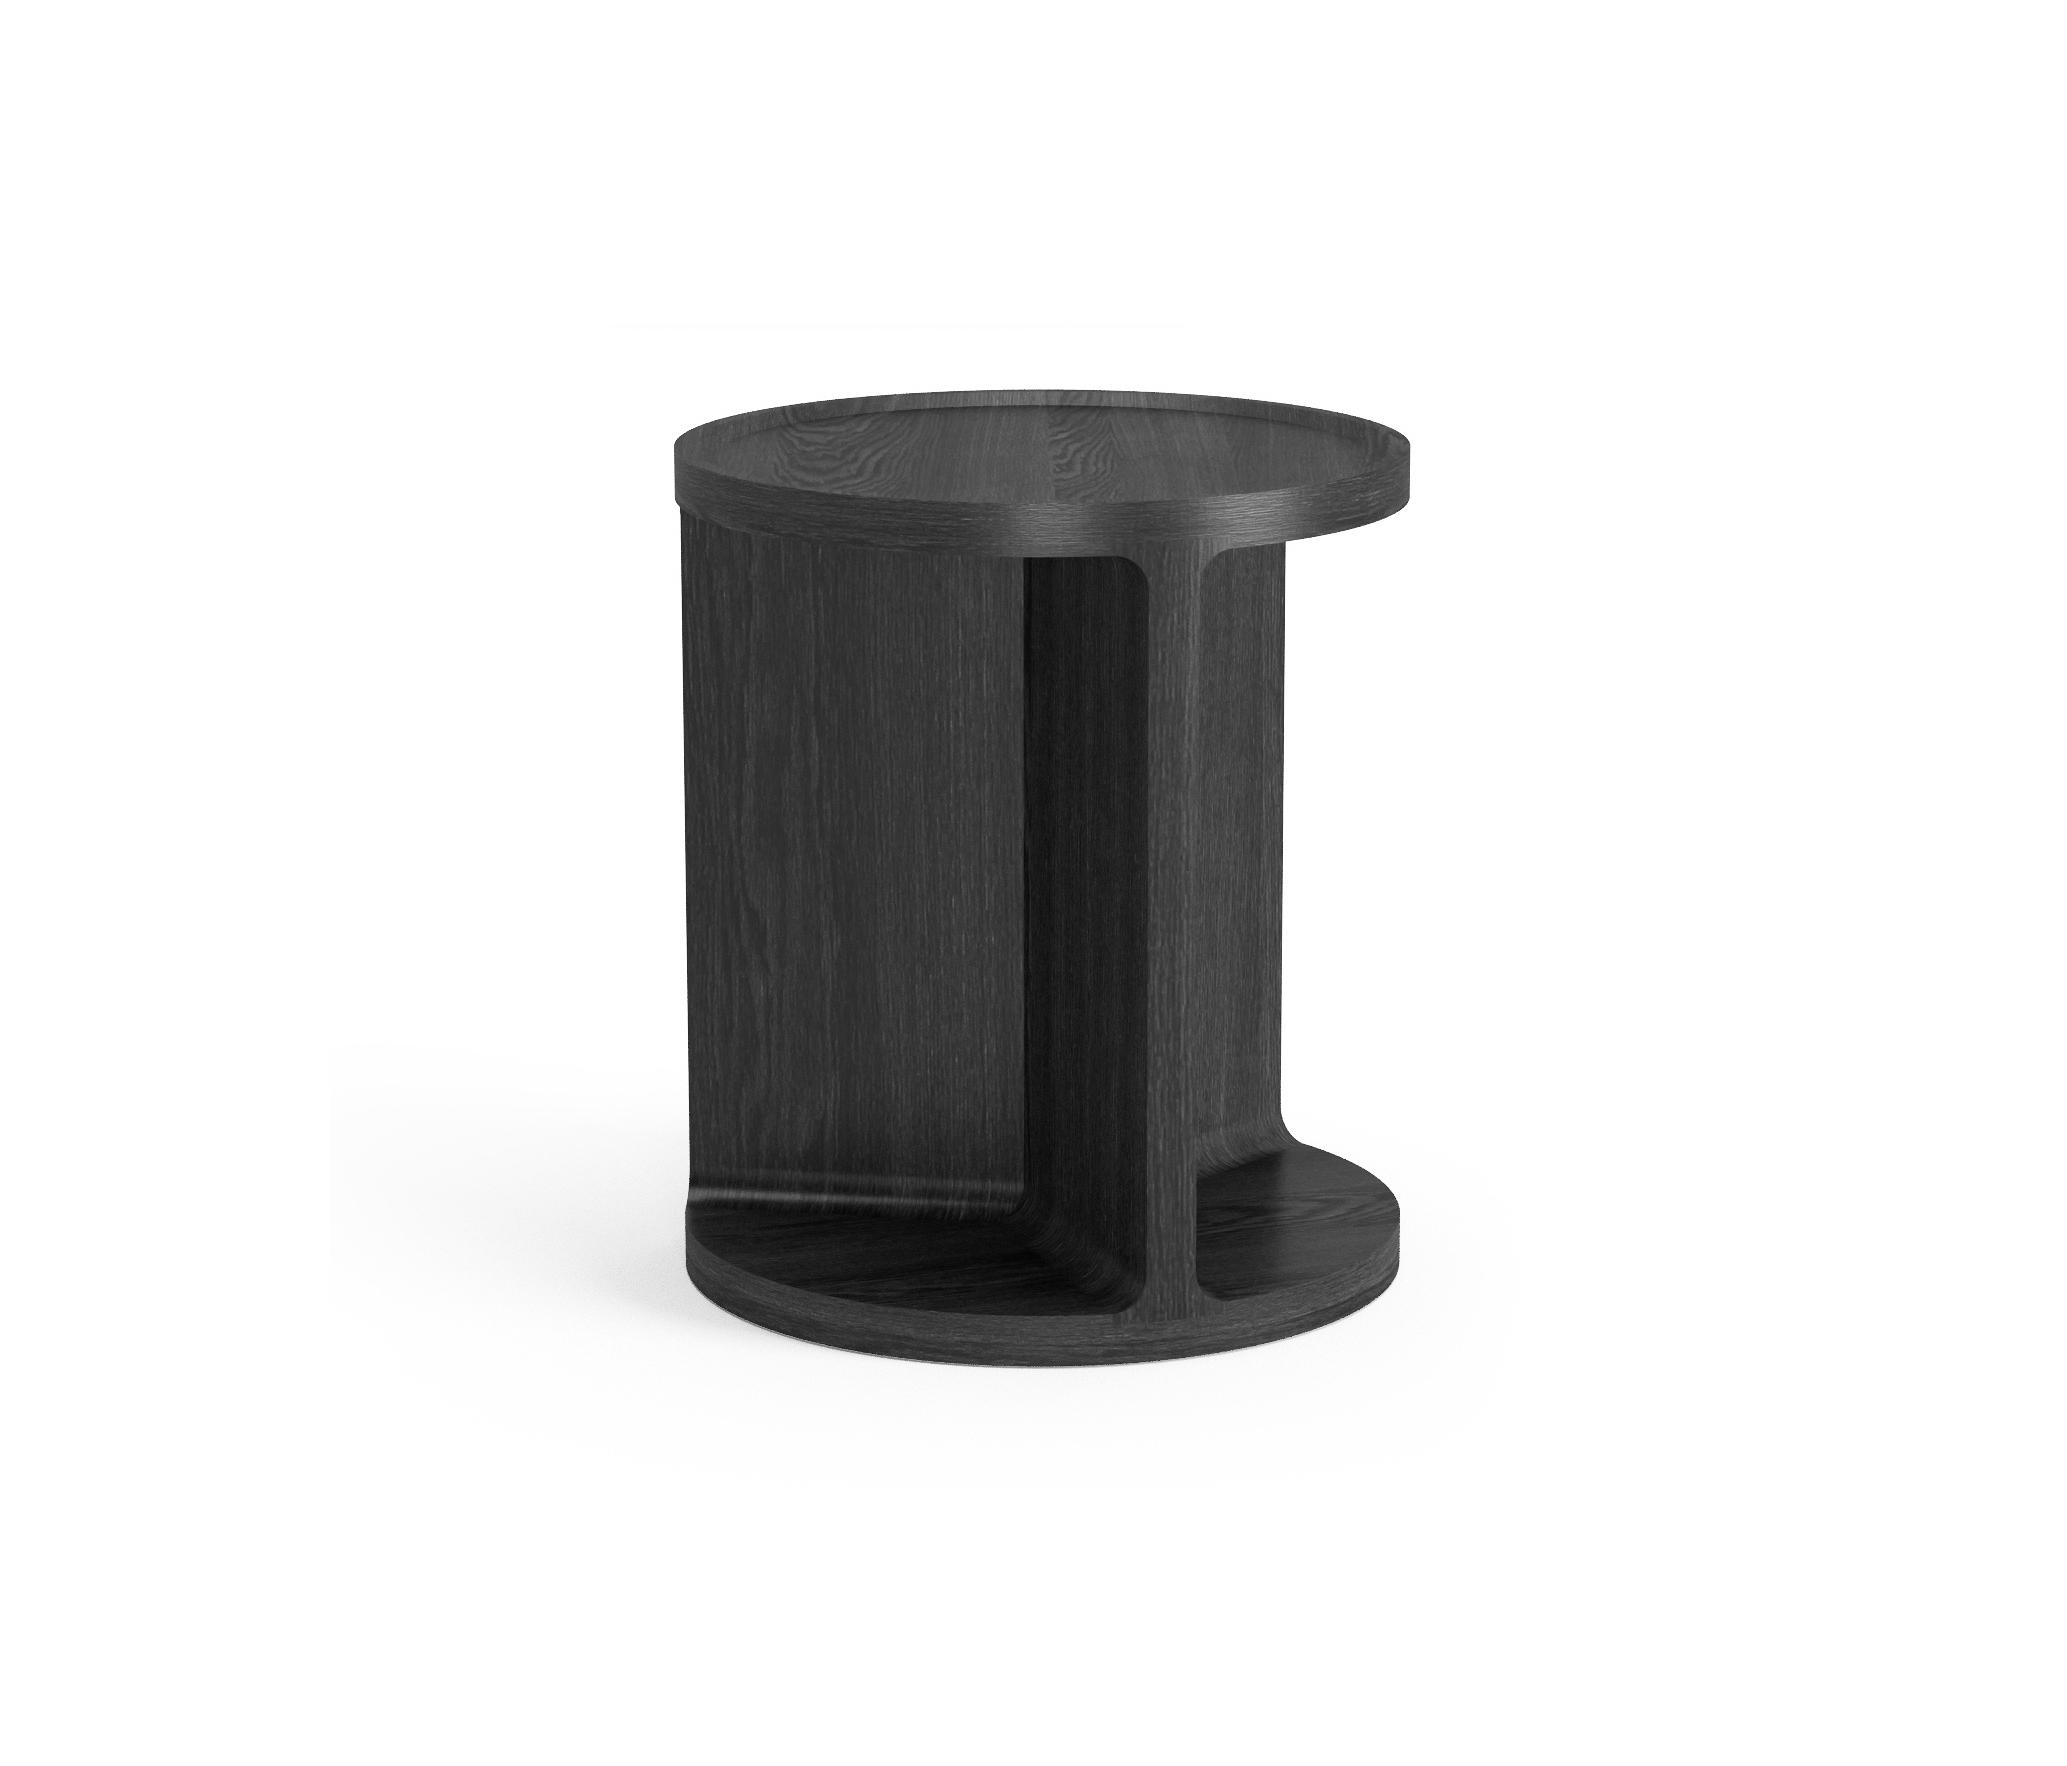 Drum Low Side Table Designer Furniture Architonic